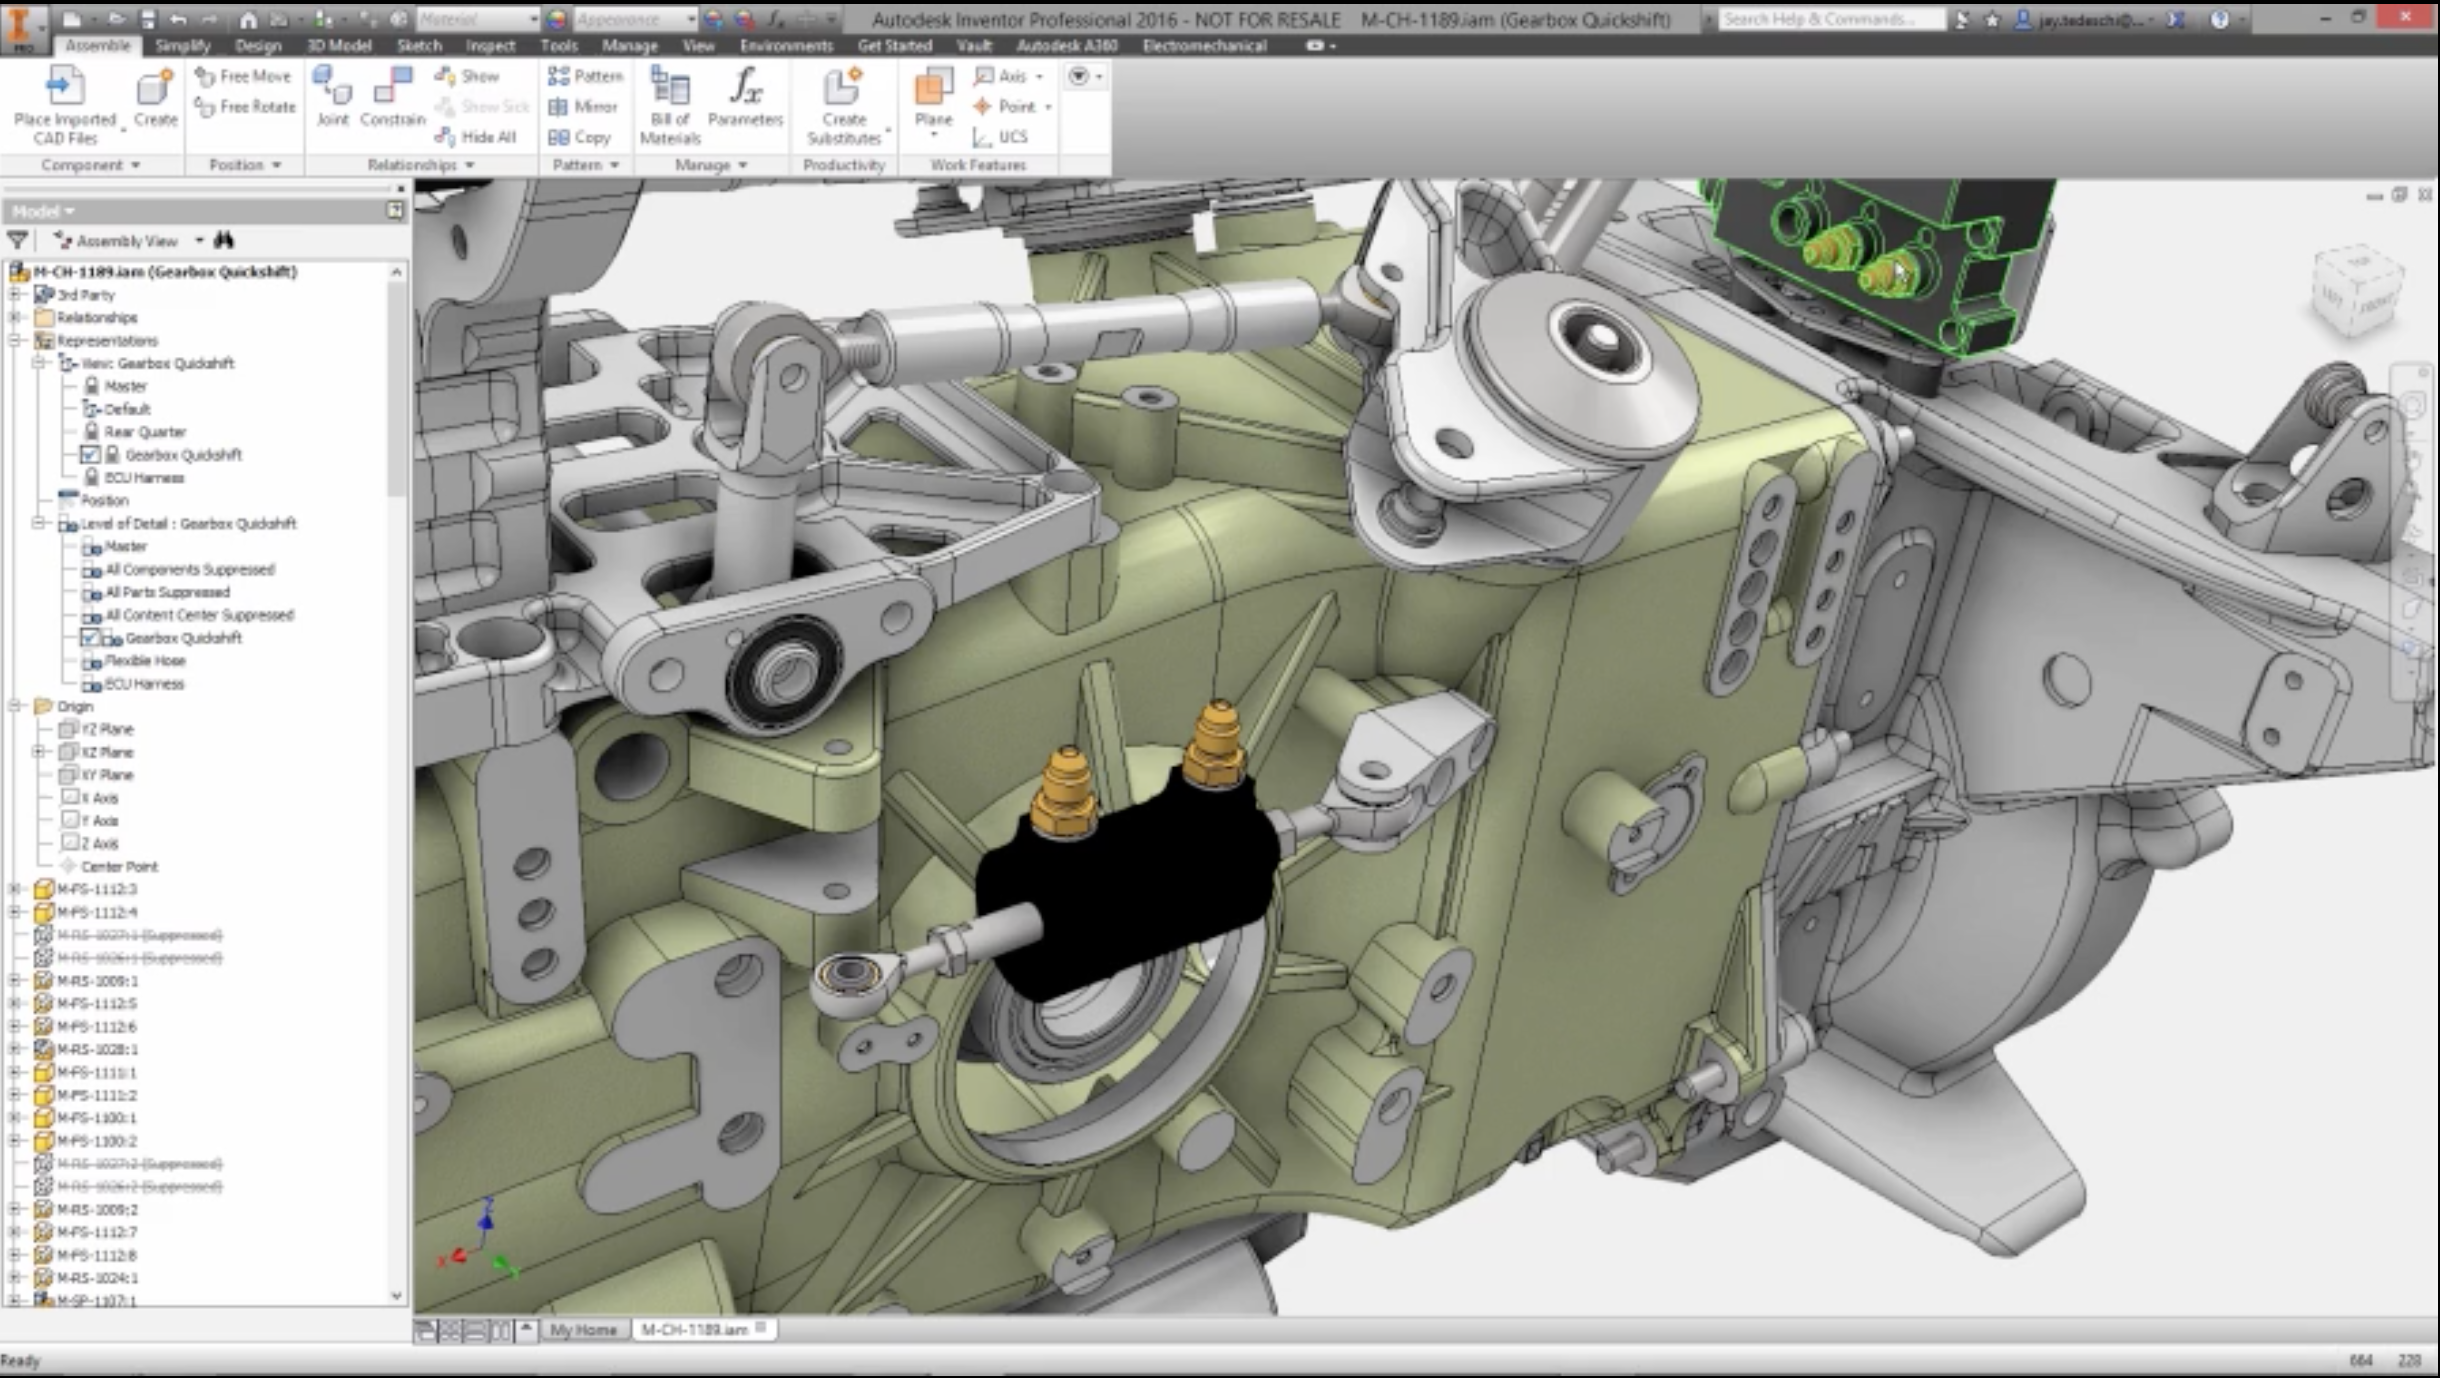 Autodesk Inventor Free Download – Is There a Free Full Version? | All3DP